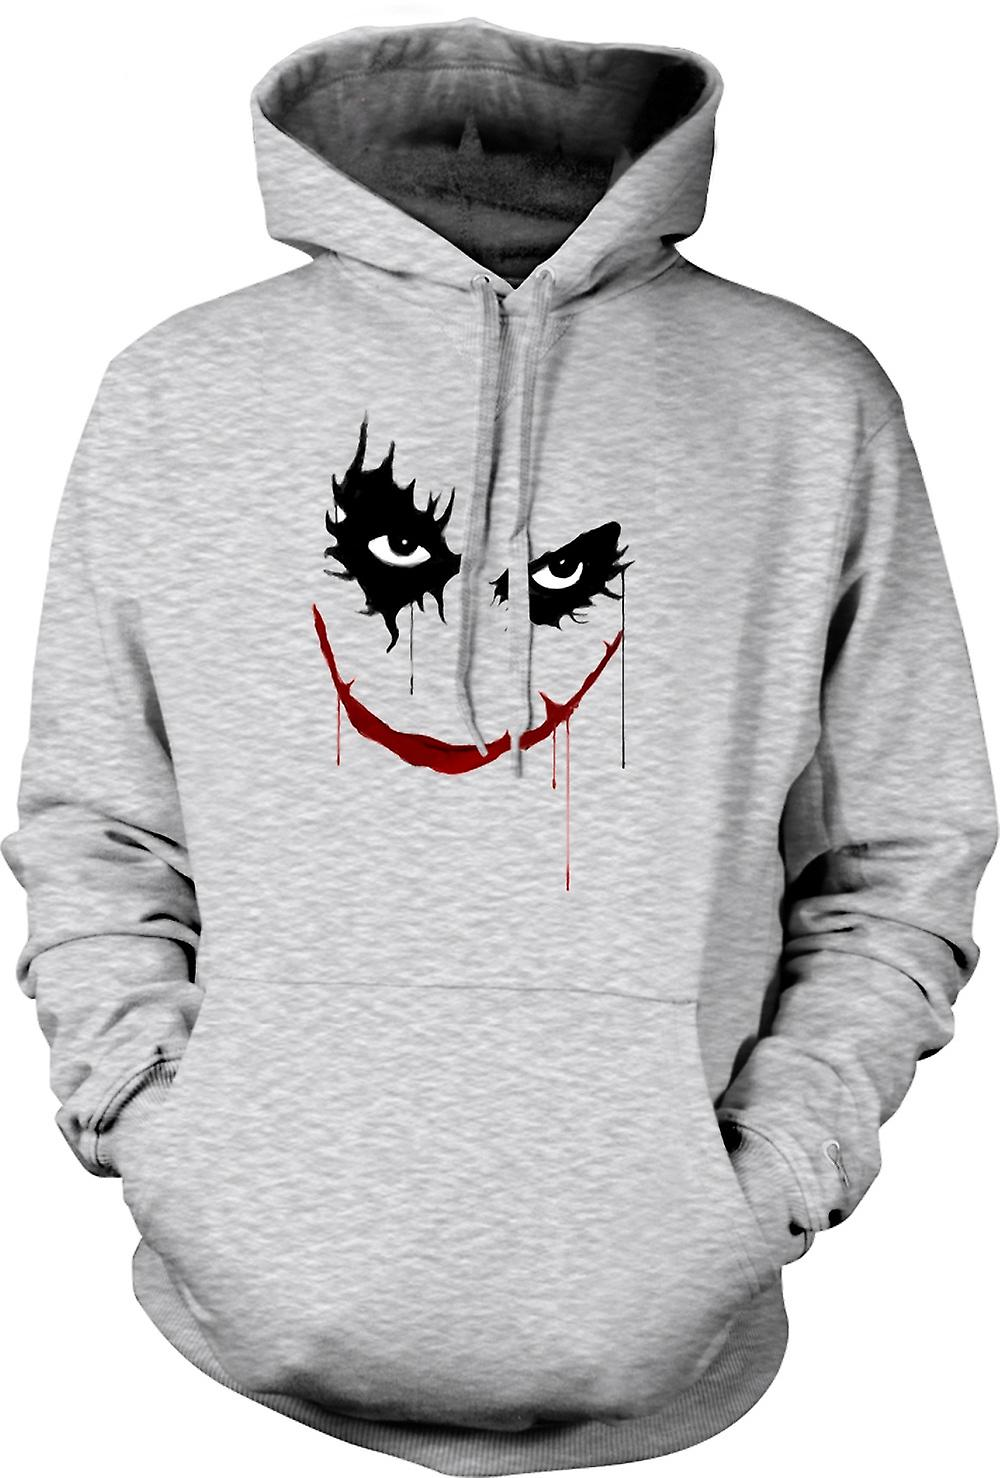 Mens Hoodie - Joker Smiling - Batman - Pop Art